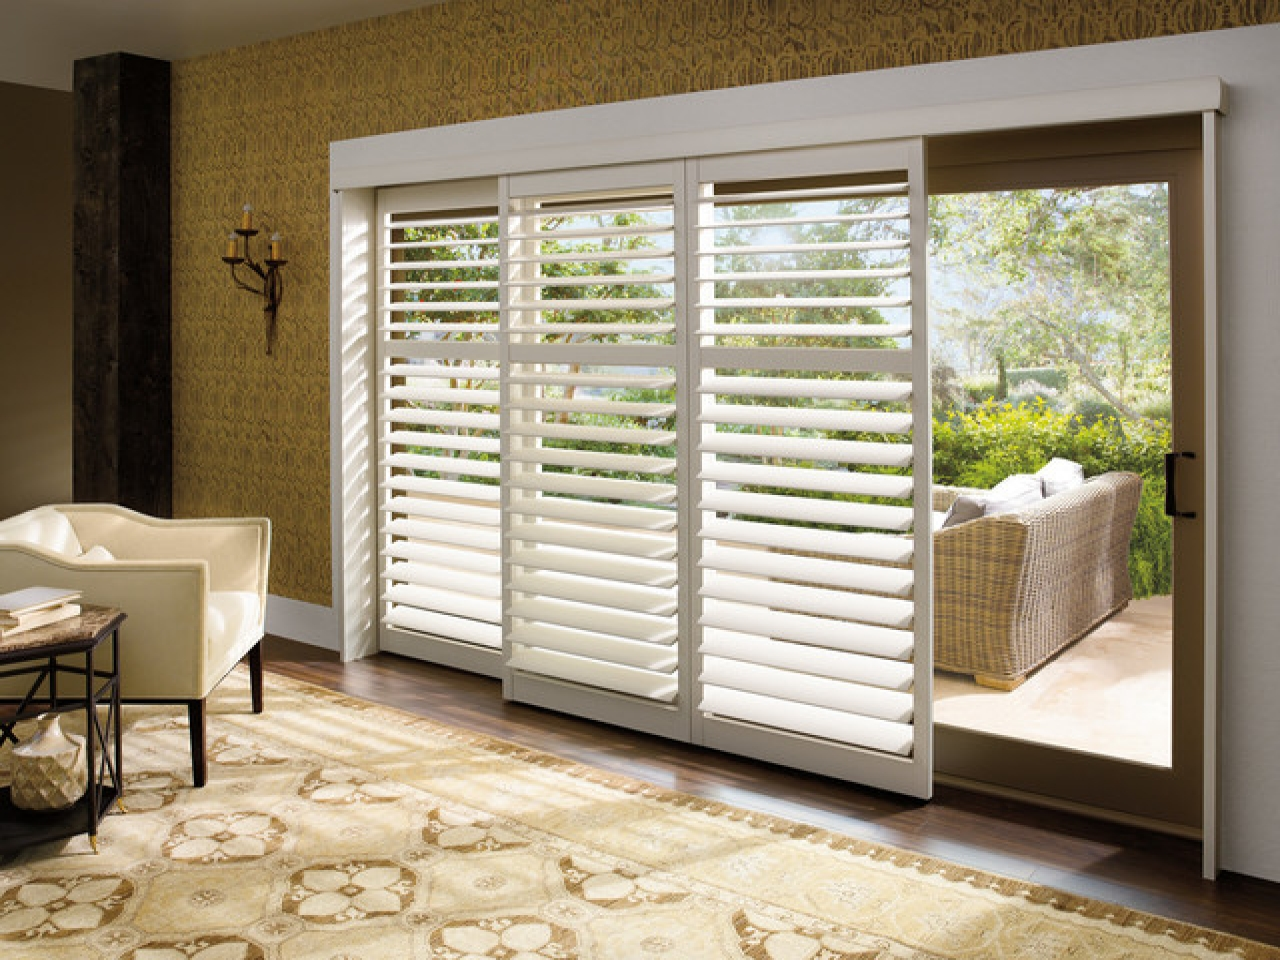 What is the cost of applying Sliding door window treatments?